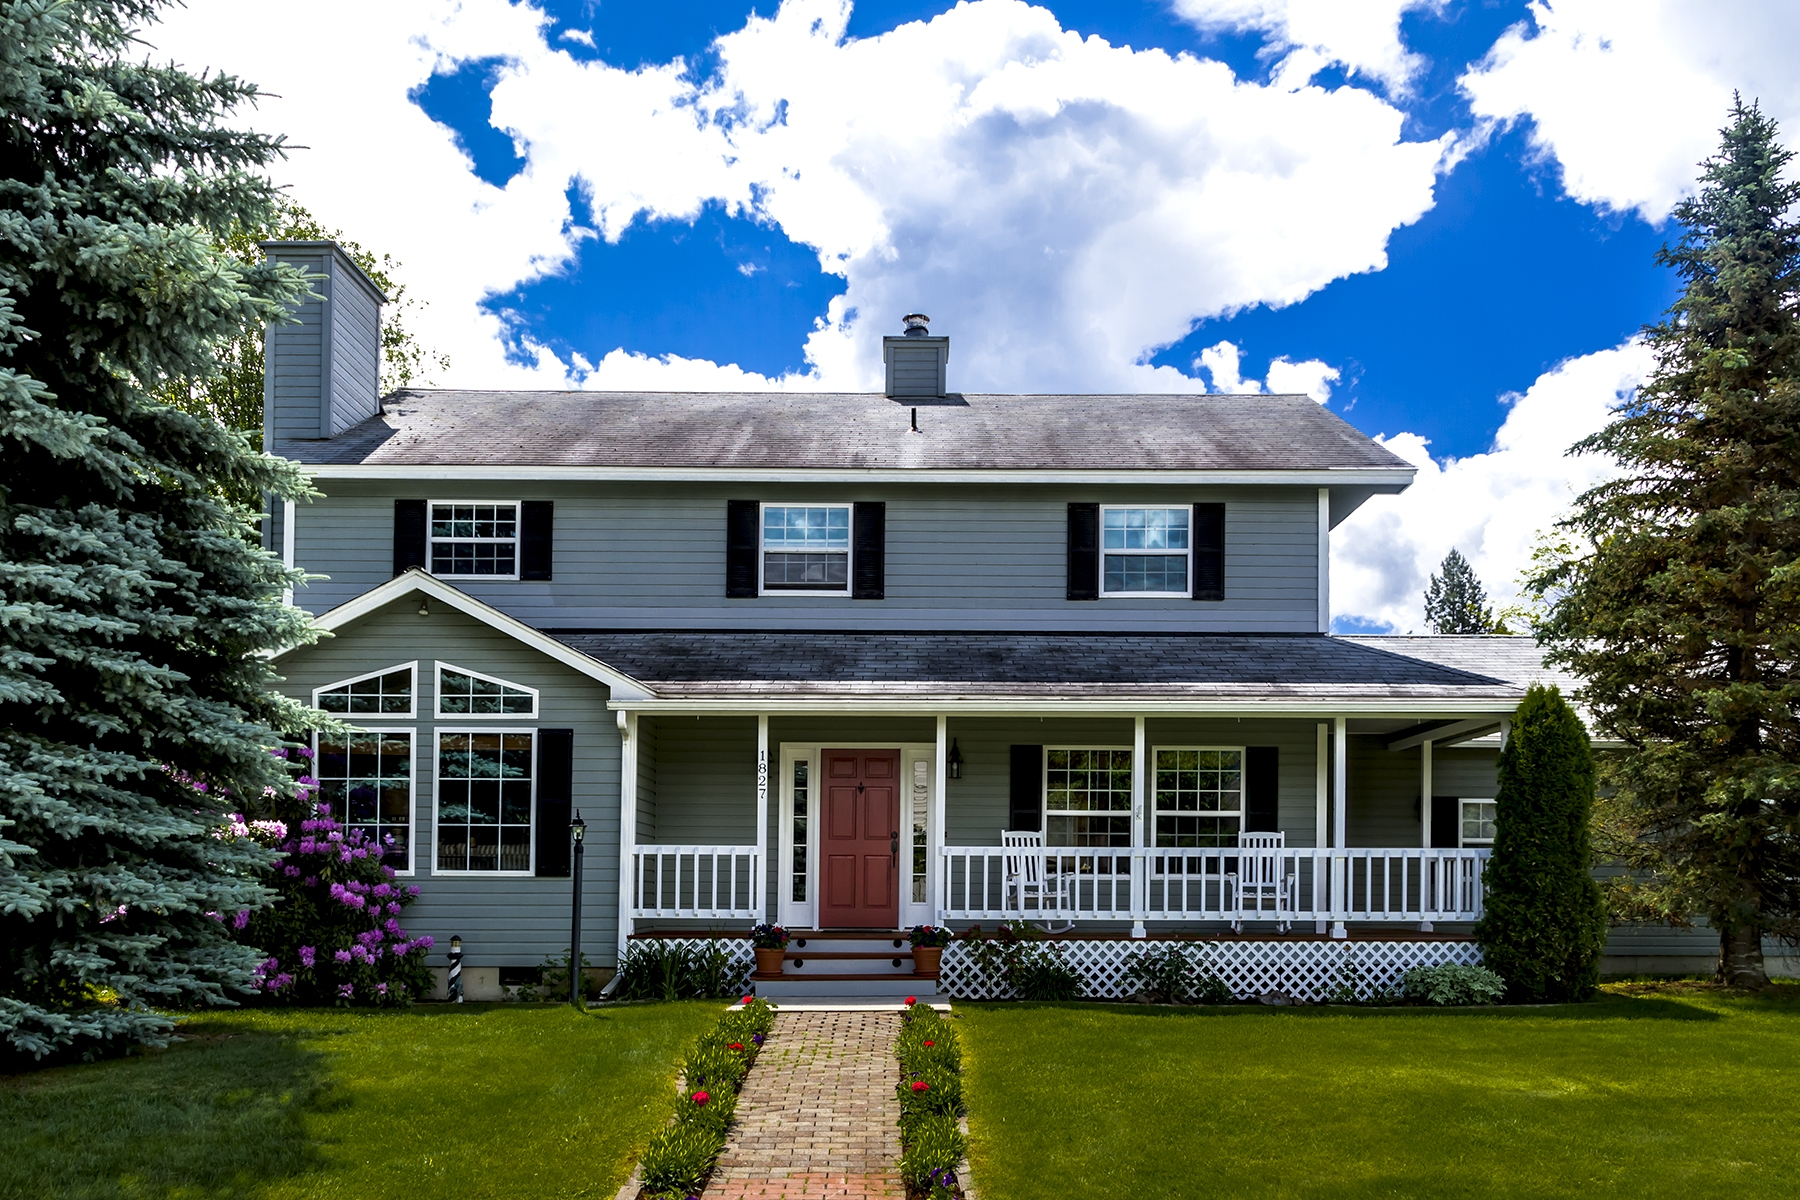 Single Family Home for Sale at Two Story in Sandpoint 1827 Megan Lane Sandpoint, Idaho 83864 United States